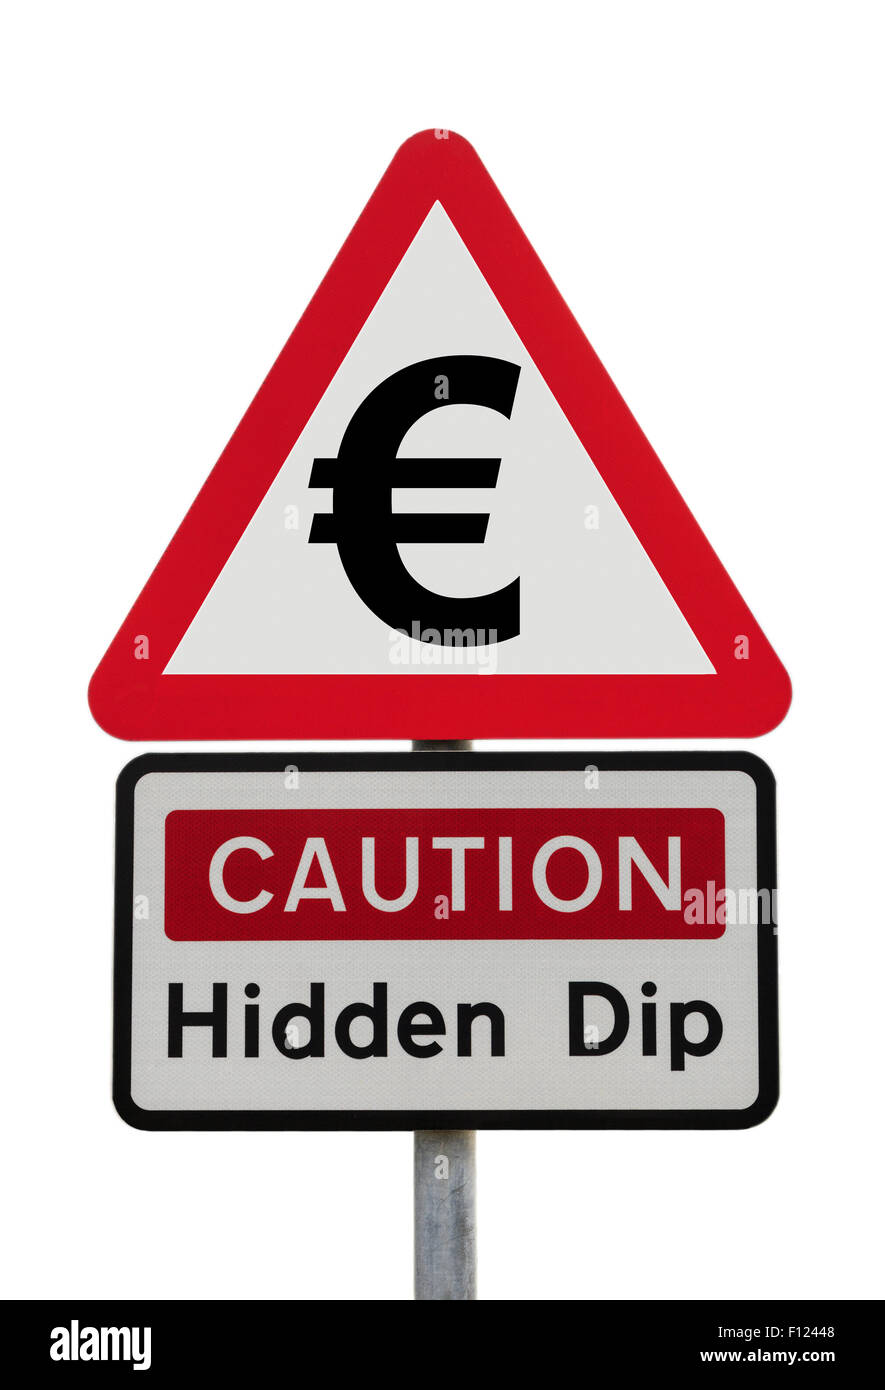 Triangular road sign warning Caution Hidden Dip with Euro sign to illustrate financial future and Brexit concept. - Stock Image